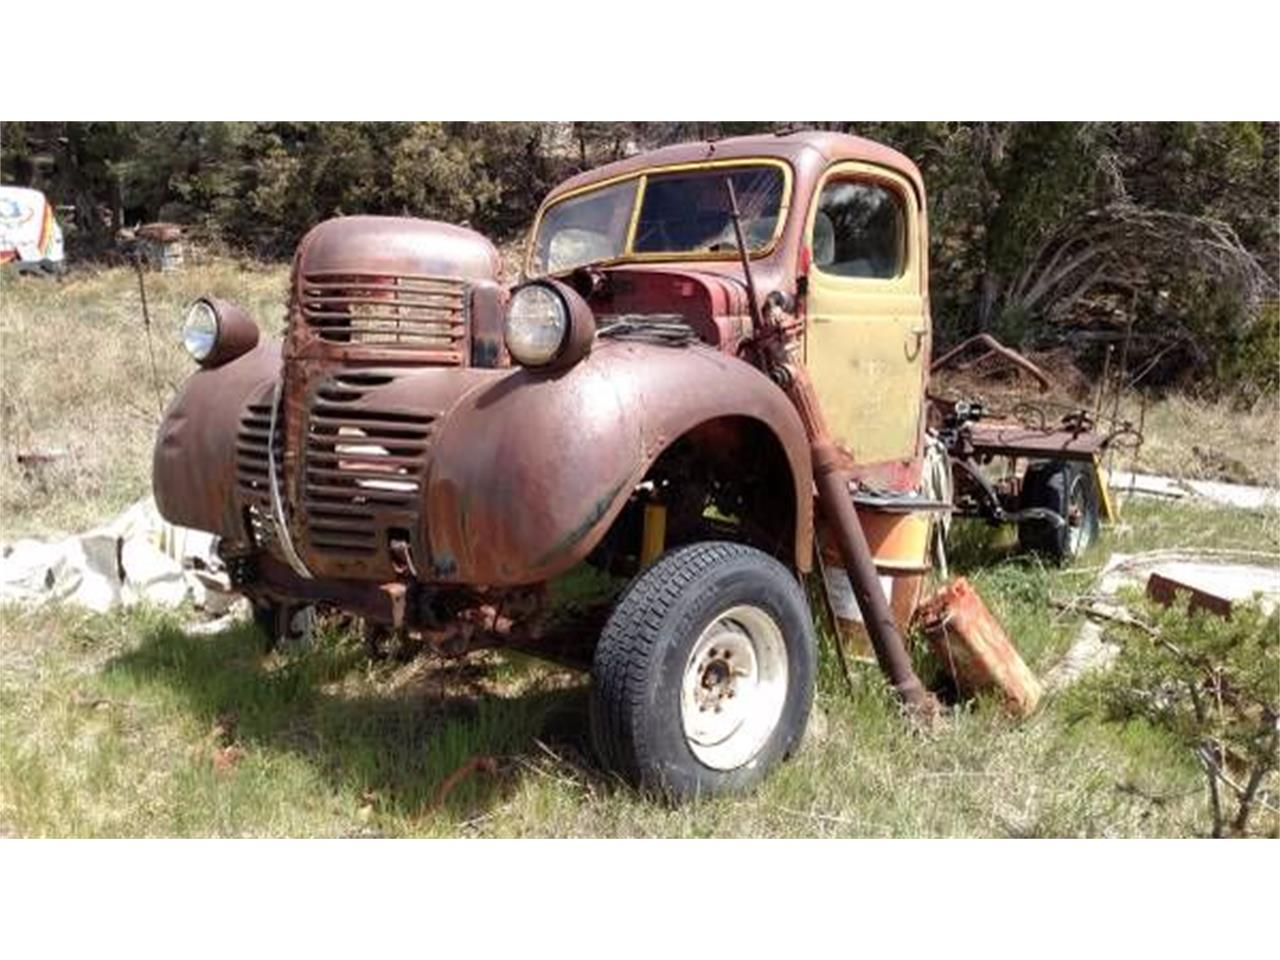 Old Dodge Power Wagon For Sale >> 1947 Dodge Power Wagon For Sale Classiccars Com Cc 1121052